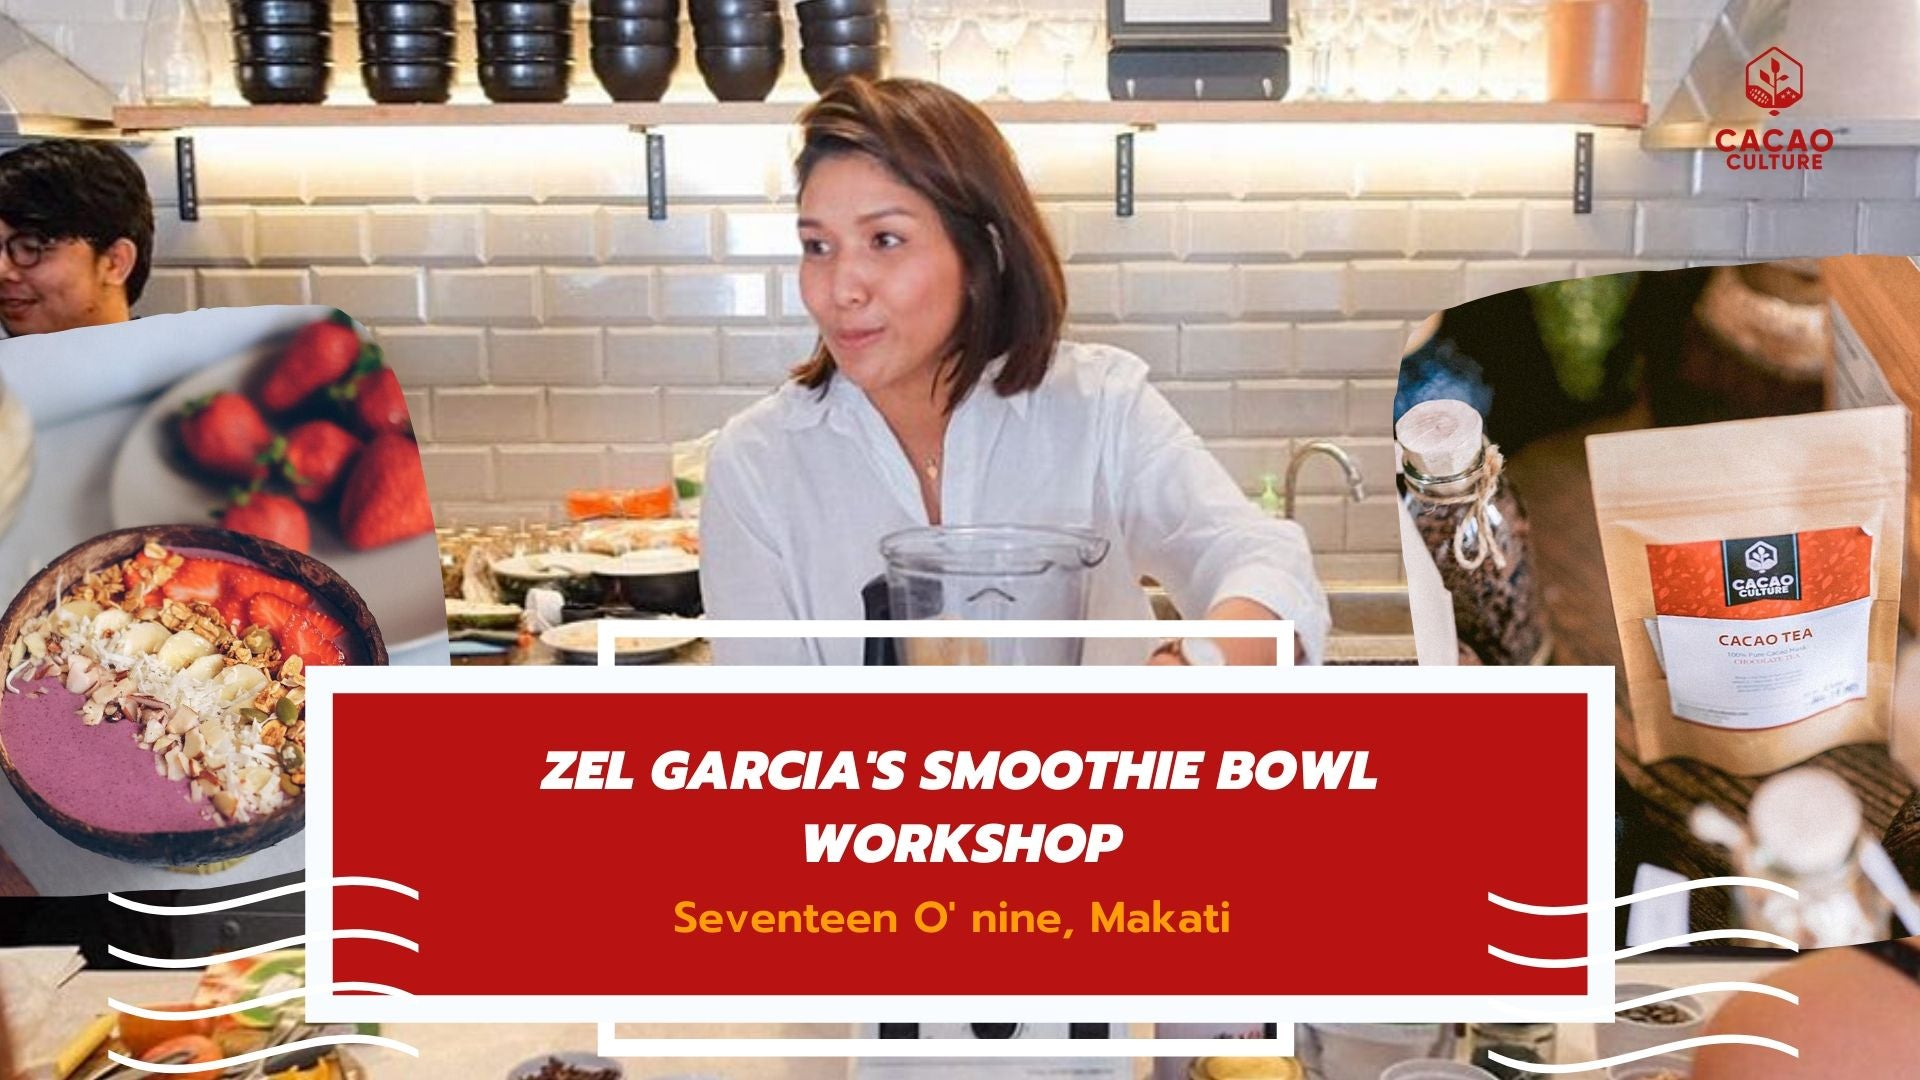 Smoothie Bowl Workshop with Zel Garcia